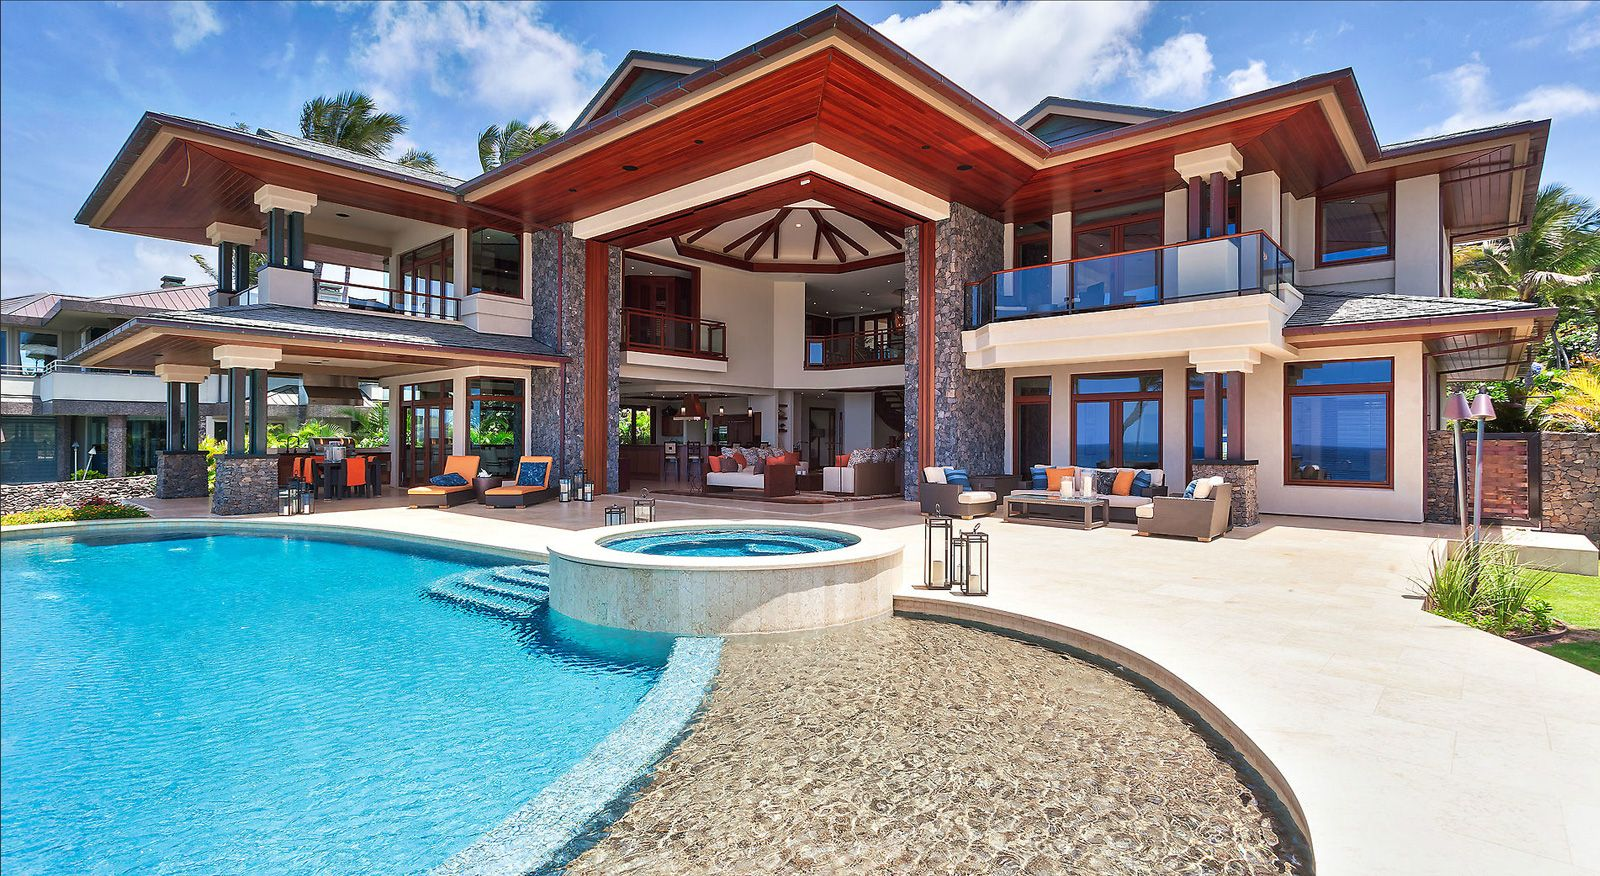 Nice houses on the beach - Beach Houses Kapalua Place Maui Beach House 49 Pics The Jet Life